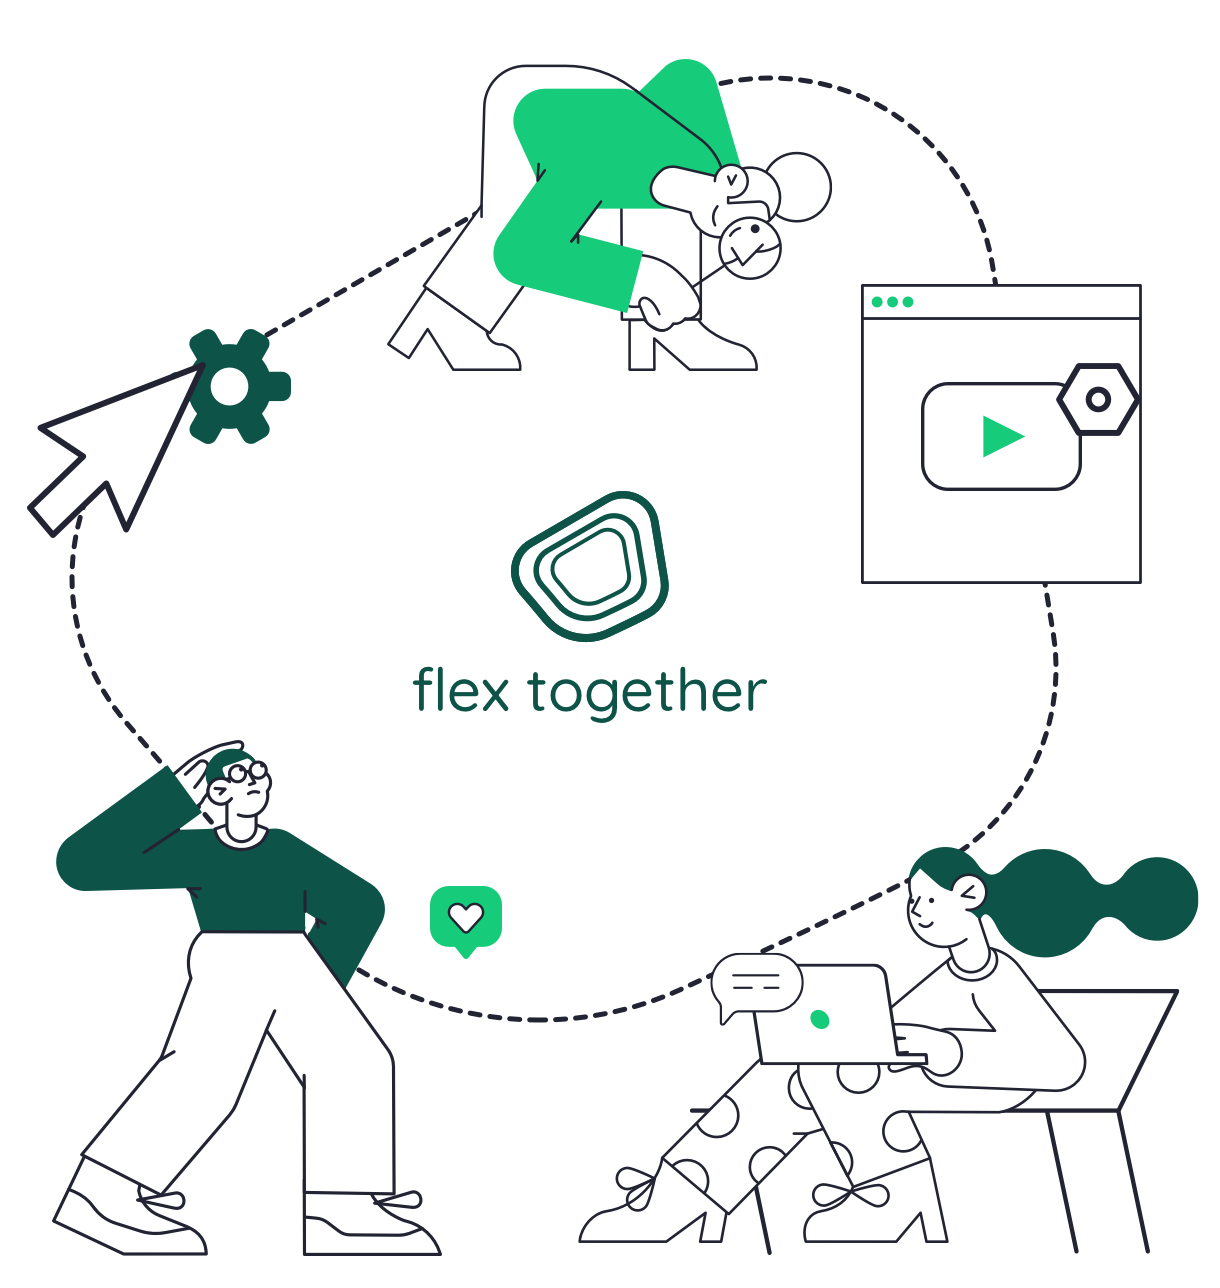 Illustration showing multiple people engaging in digital activities